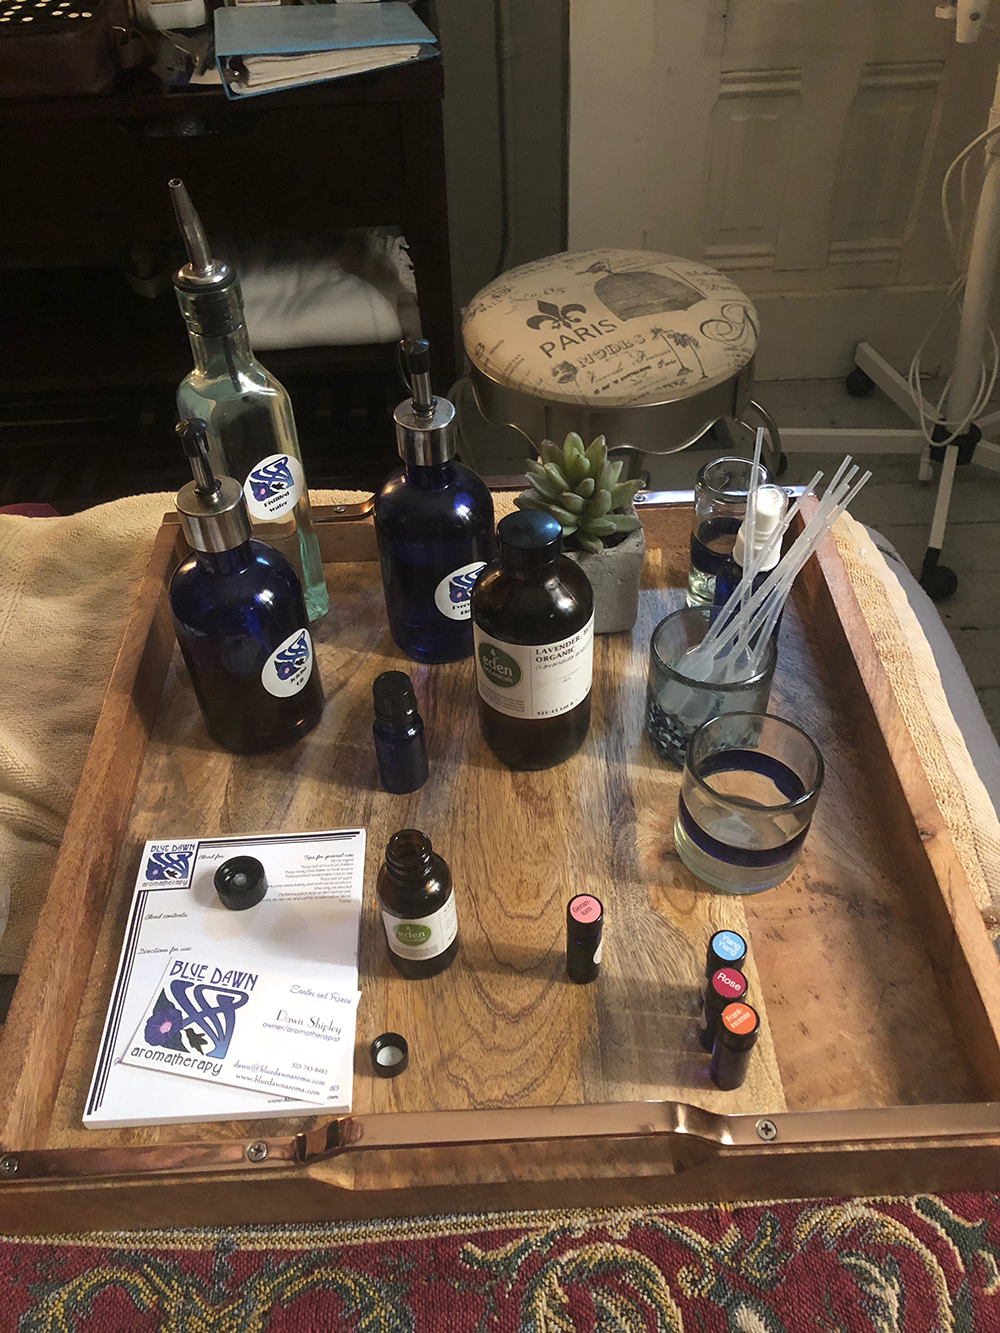 The spa also offers personalized one-on-one design sessions with Shipley, who works with guests in tandem to create a unique essential oil blend.